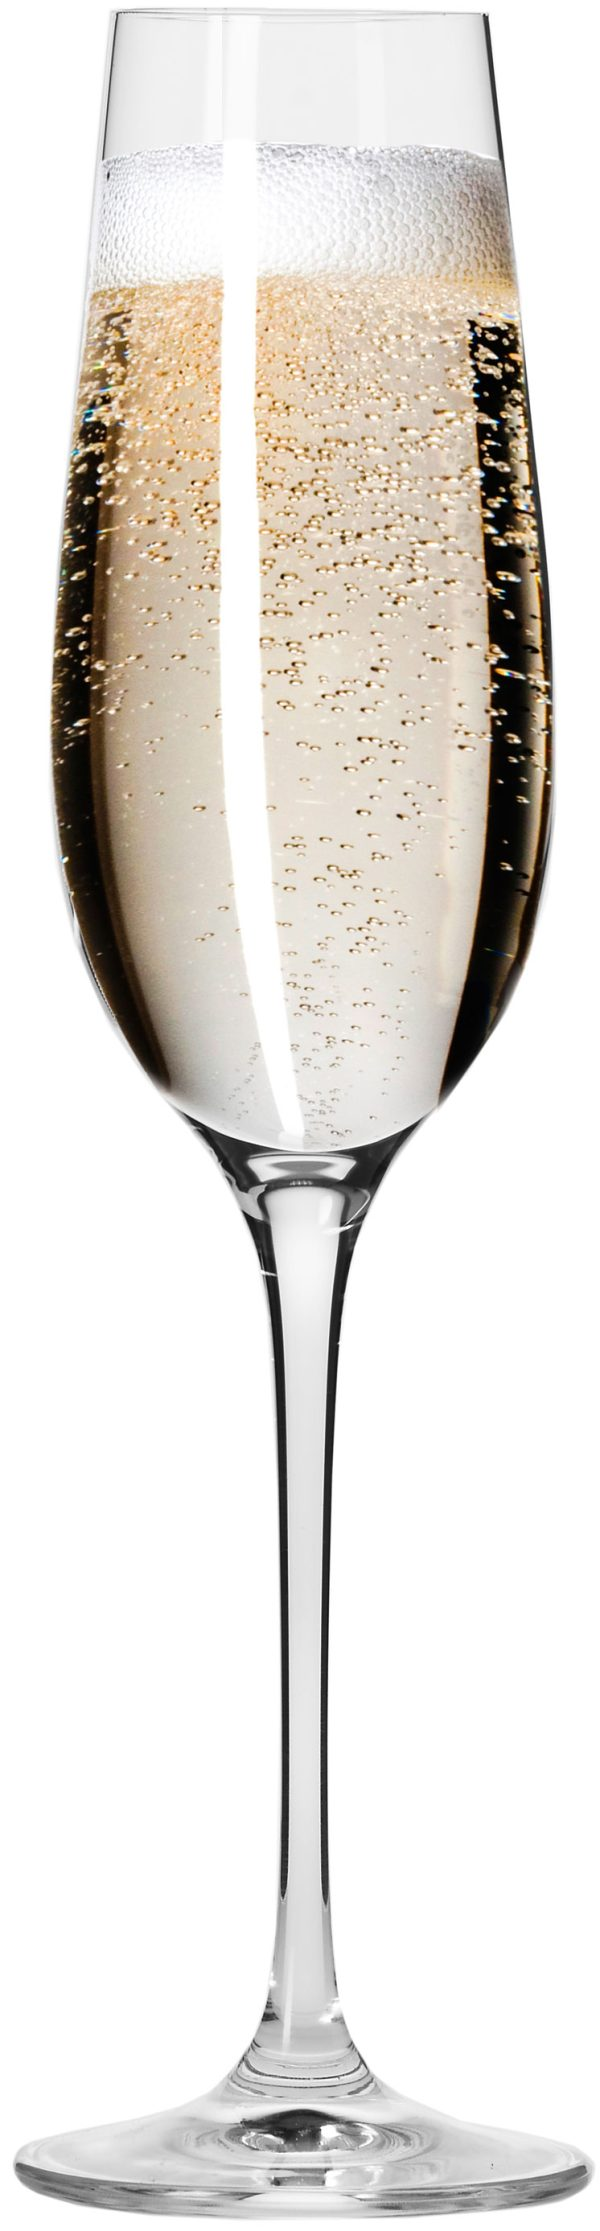 "סט 6 כוסות שמפניה Krosno 180 מ""ל Harmony Collection Champagne Flute"